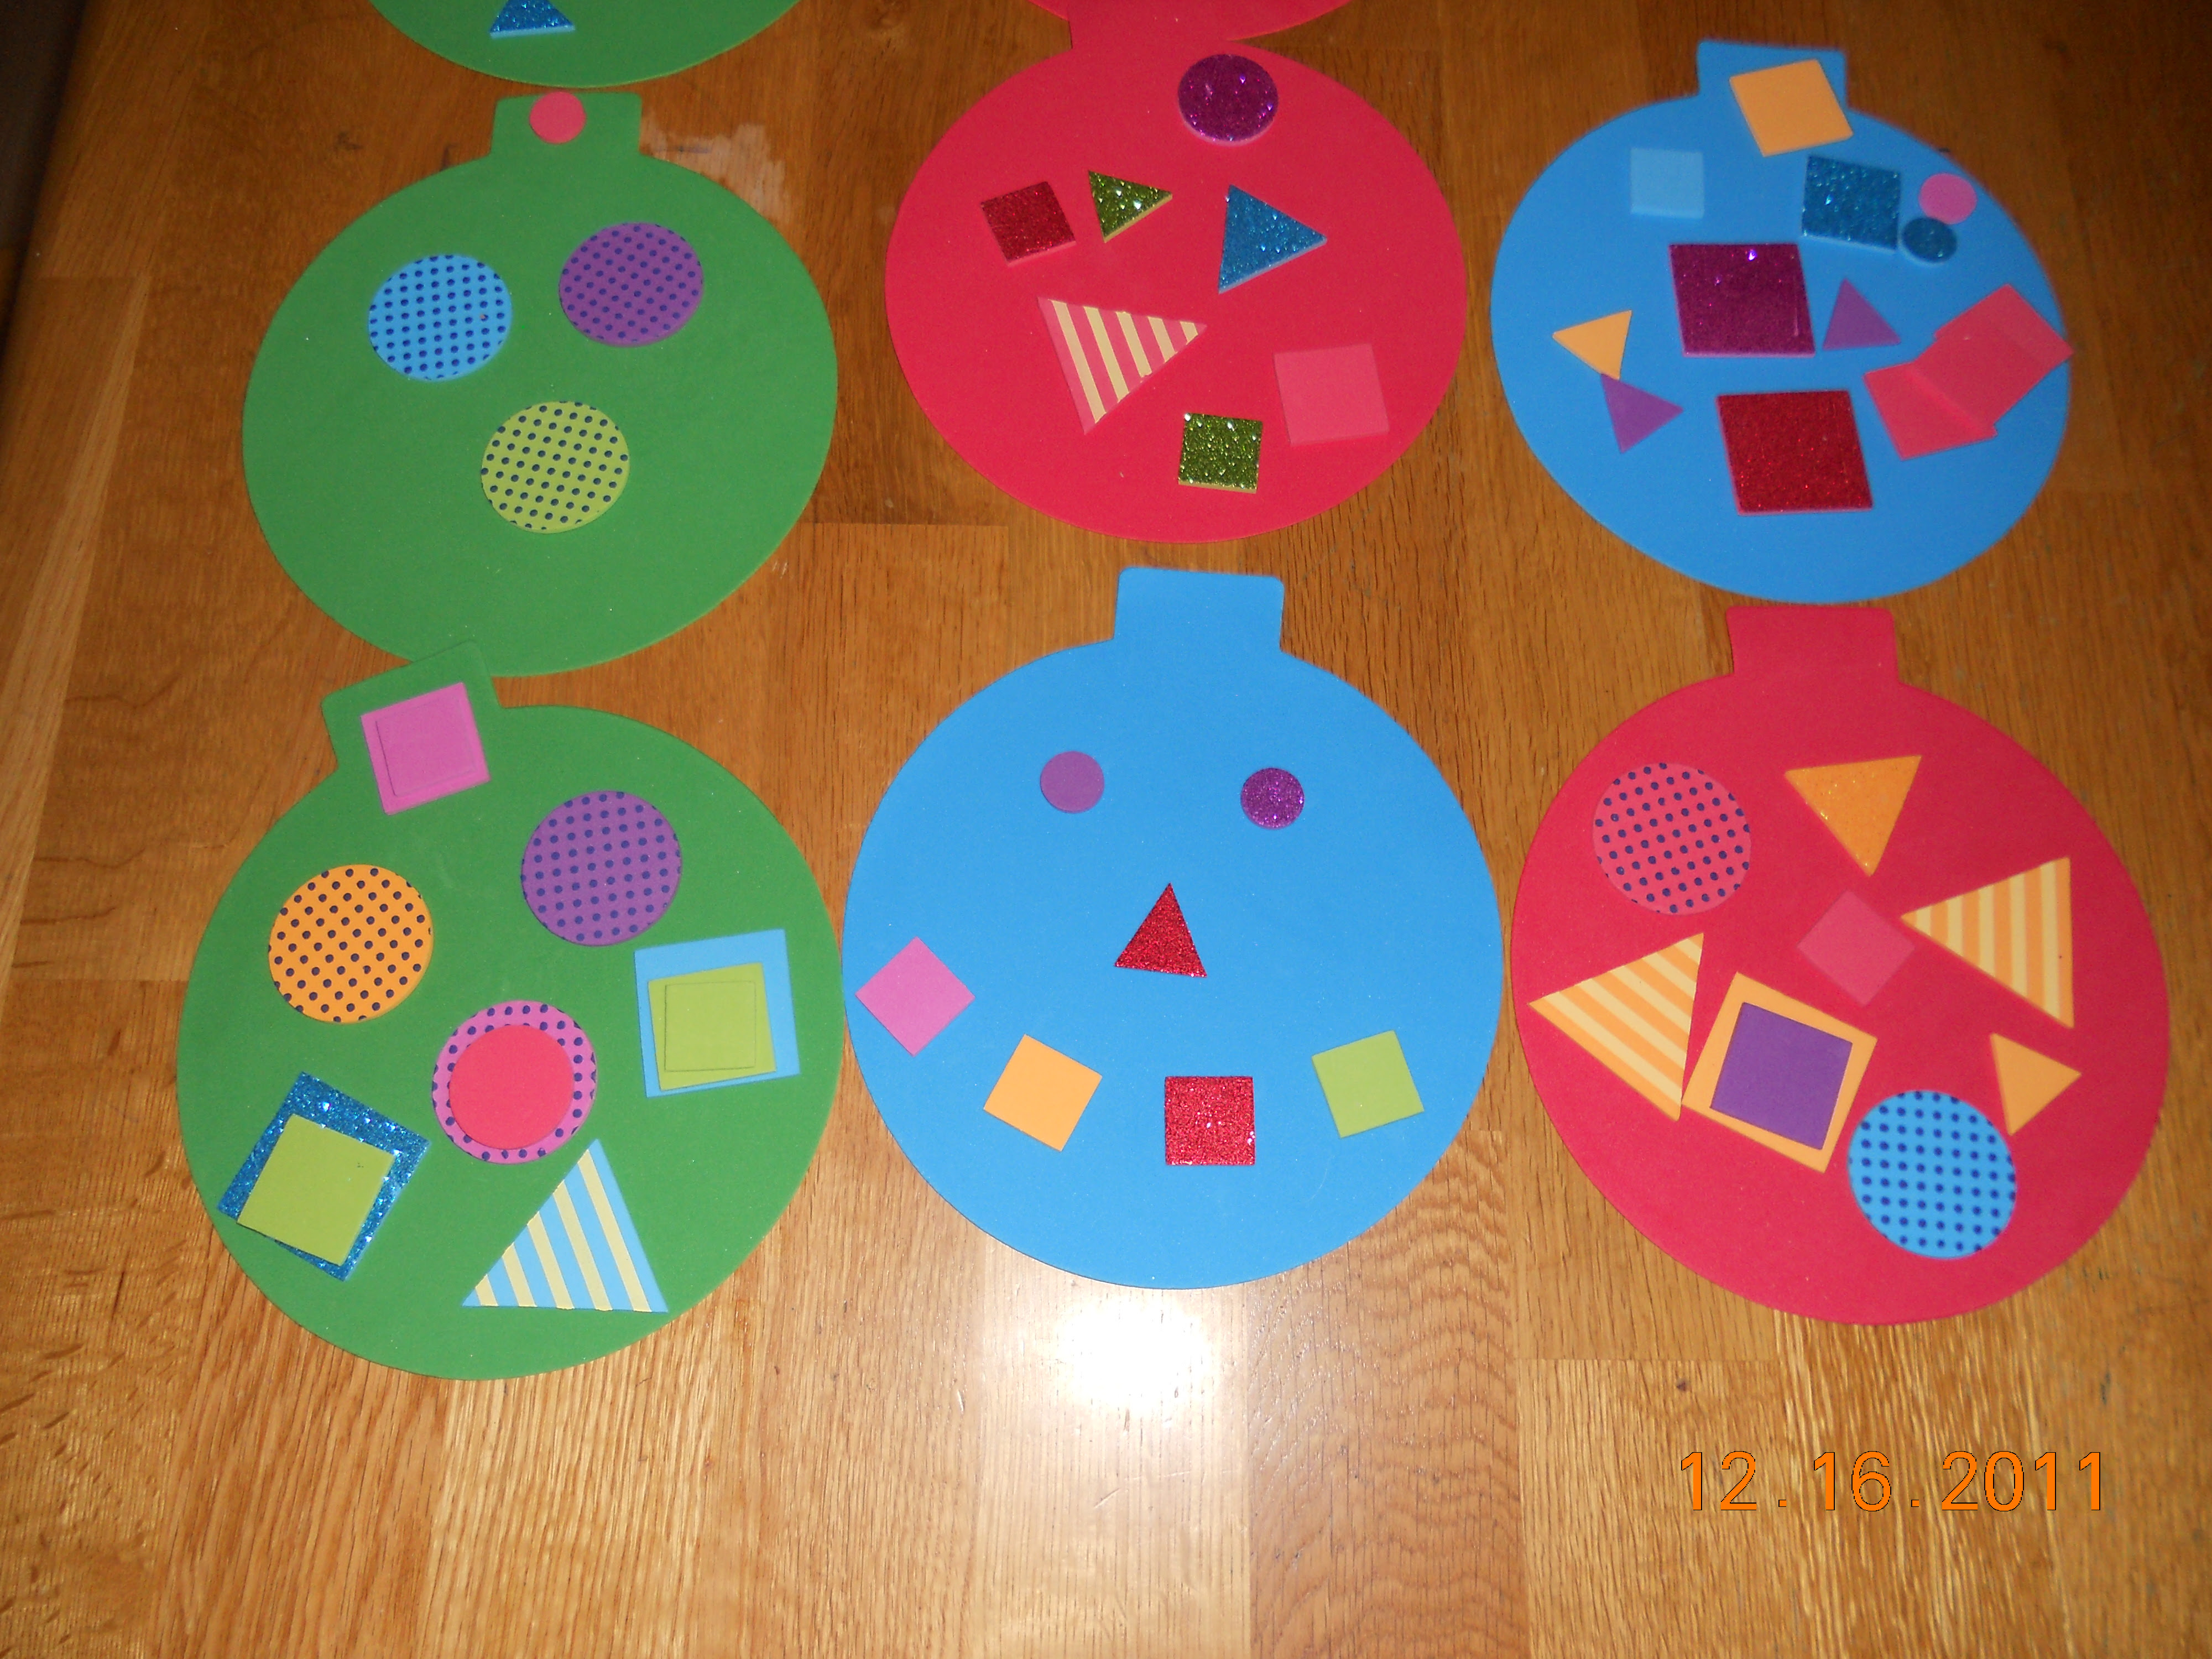 Holiday Crafts To Make And Sell  myideasbedroom.com